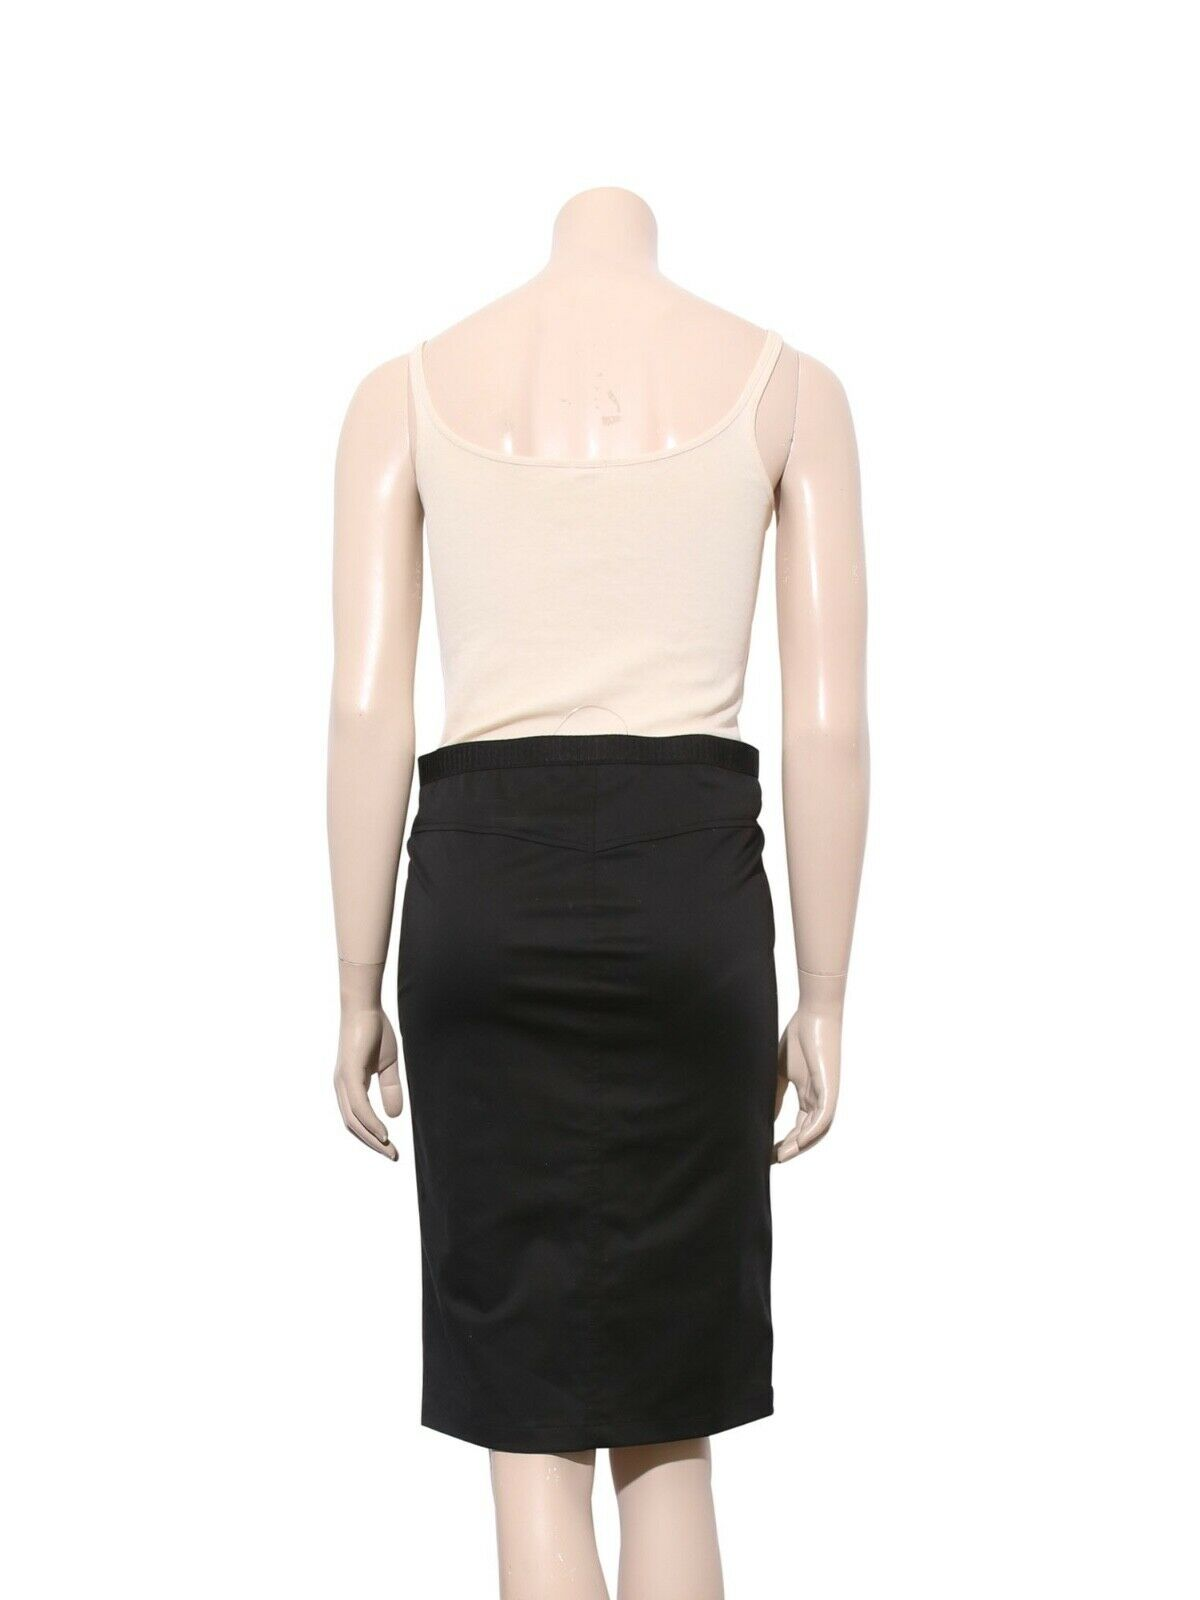 PRADA Cotton Pencil Skirt (Size 38) - image 3